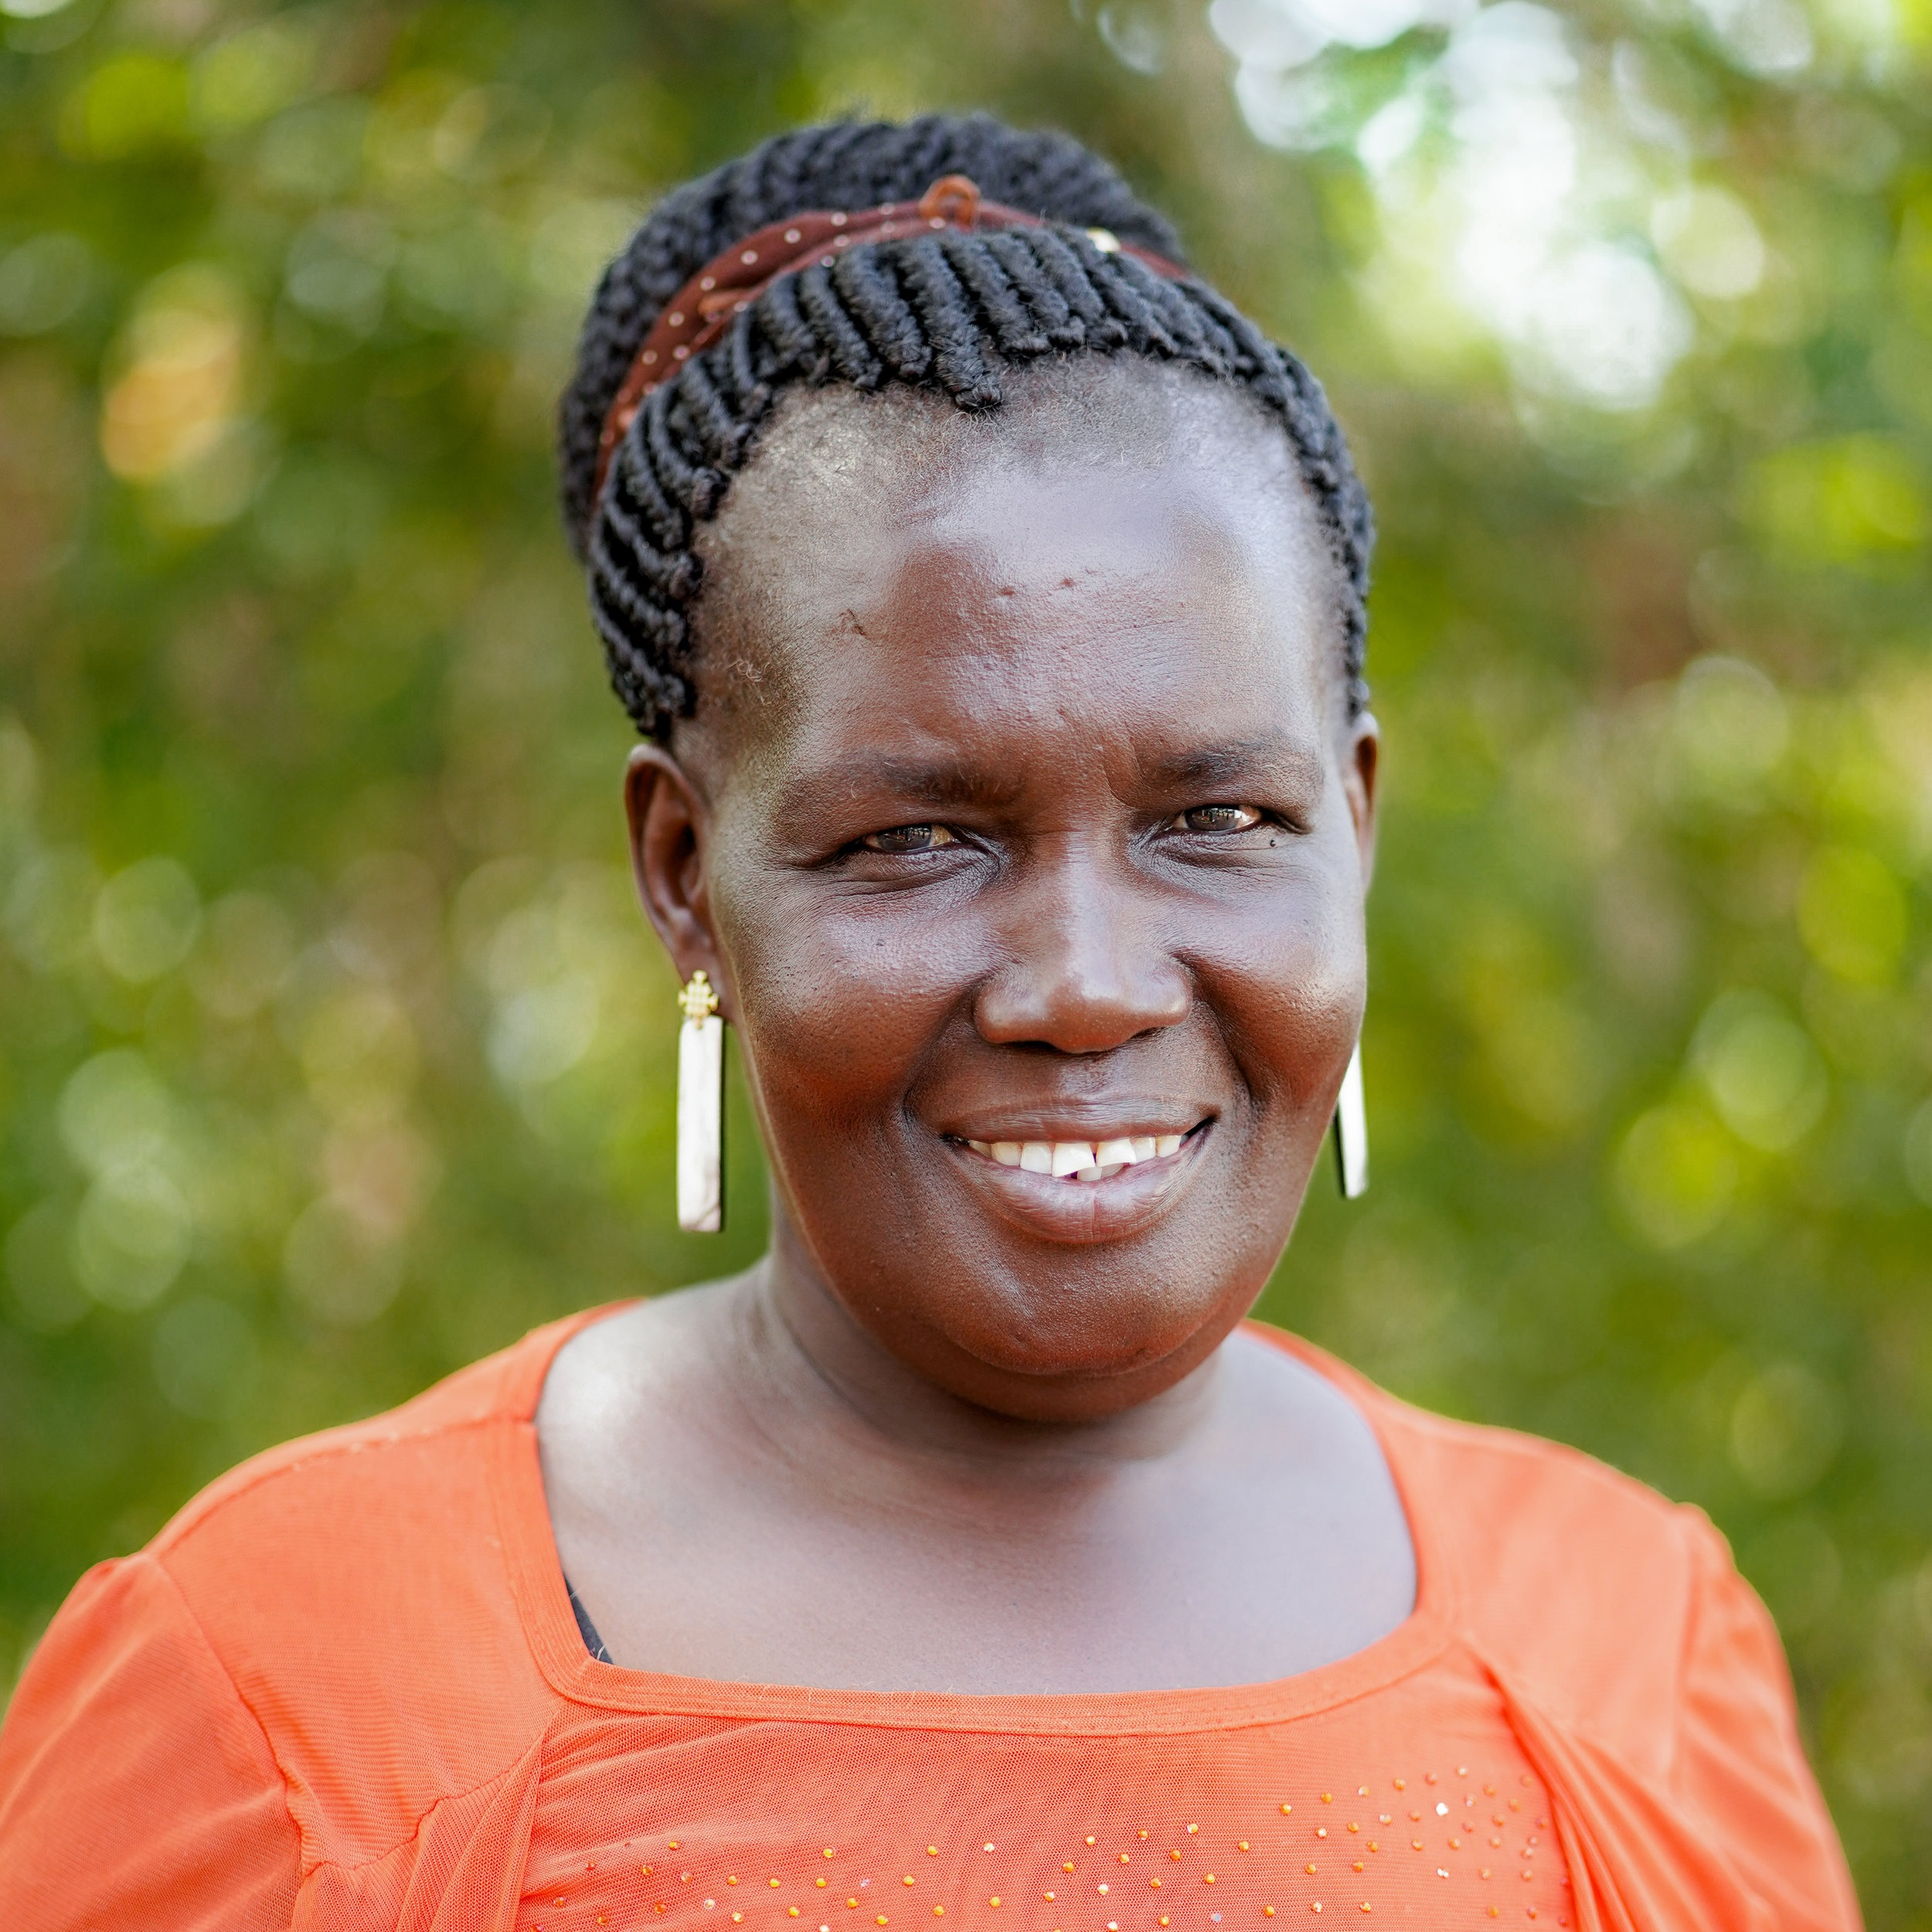 hella yangiprogram coordinator, sustainable livelihoods - Yangi hails from Northern Uganda and was forced to flee her home due to the ongoing conflict and war. After working for as a jewelry producer two years, she was promoted to a Supervisor position and enjoyed supporting her peers to improve their skills now Yangi works as the Program Coordinator and provides leadership for financial inclusion activities. Yangi primarily focuses on managing all saving groups records and ensures that the VSLA (Village Savings and Loan Association) database are complete and accurate.